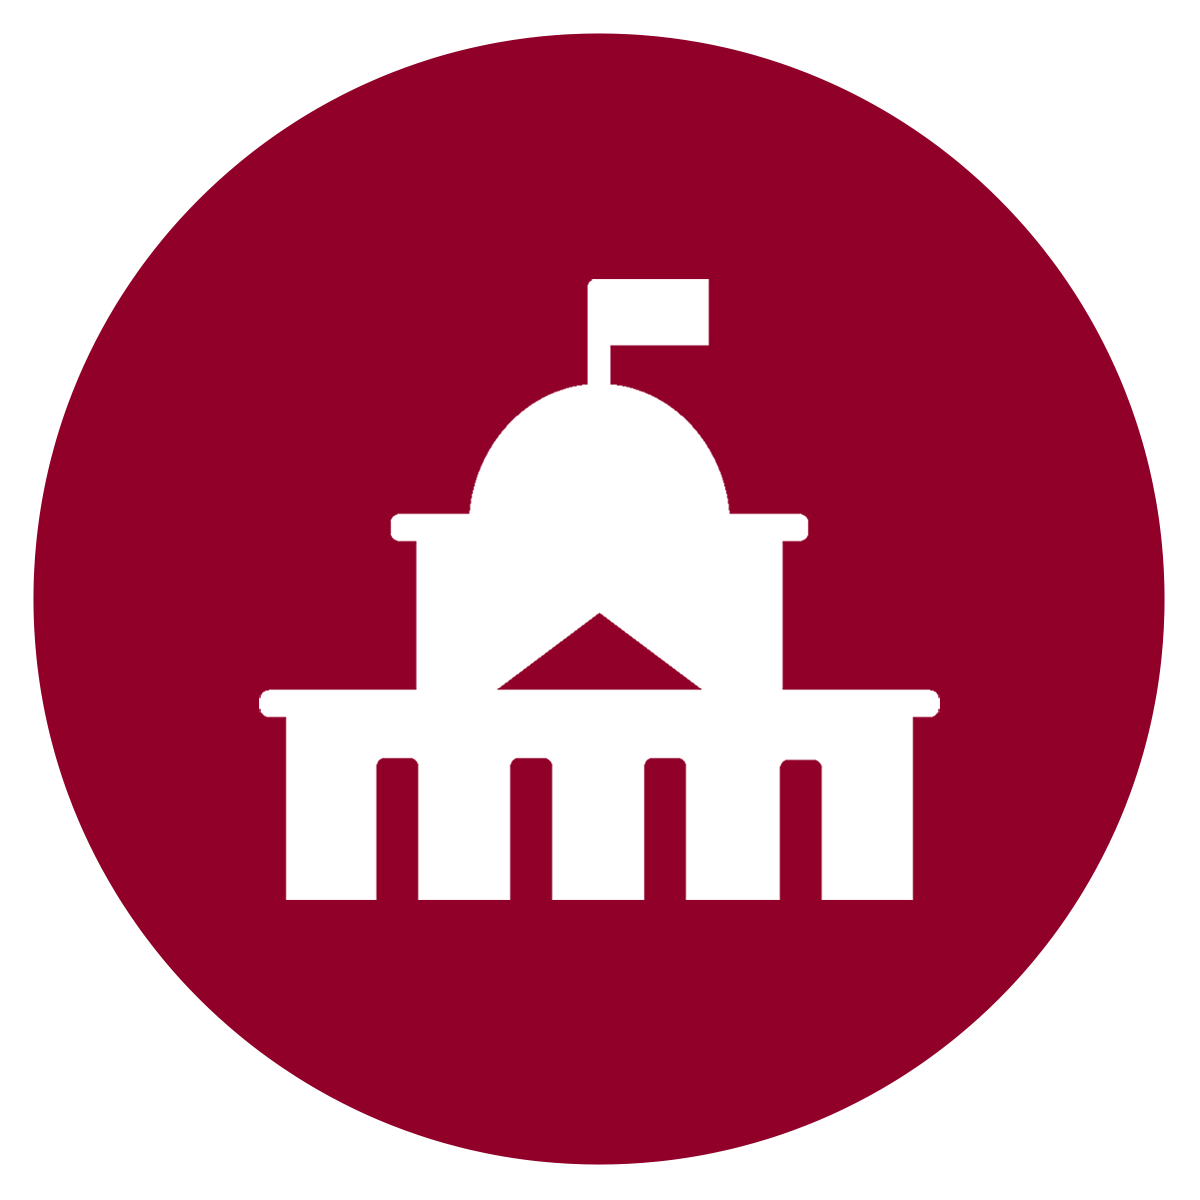 House Committee Icon